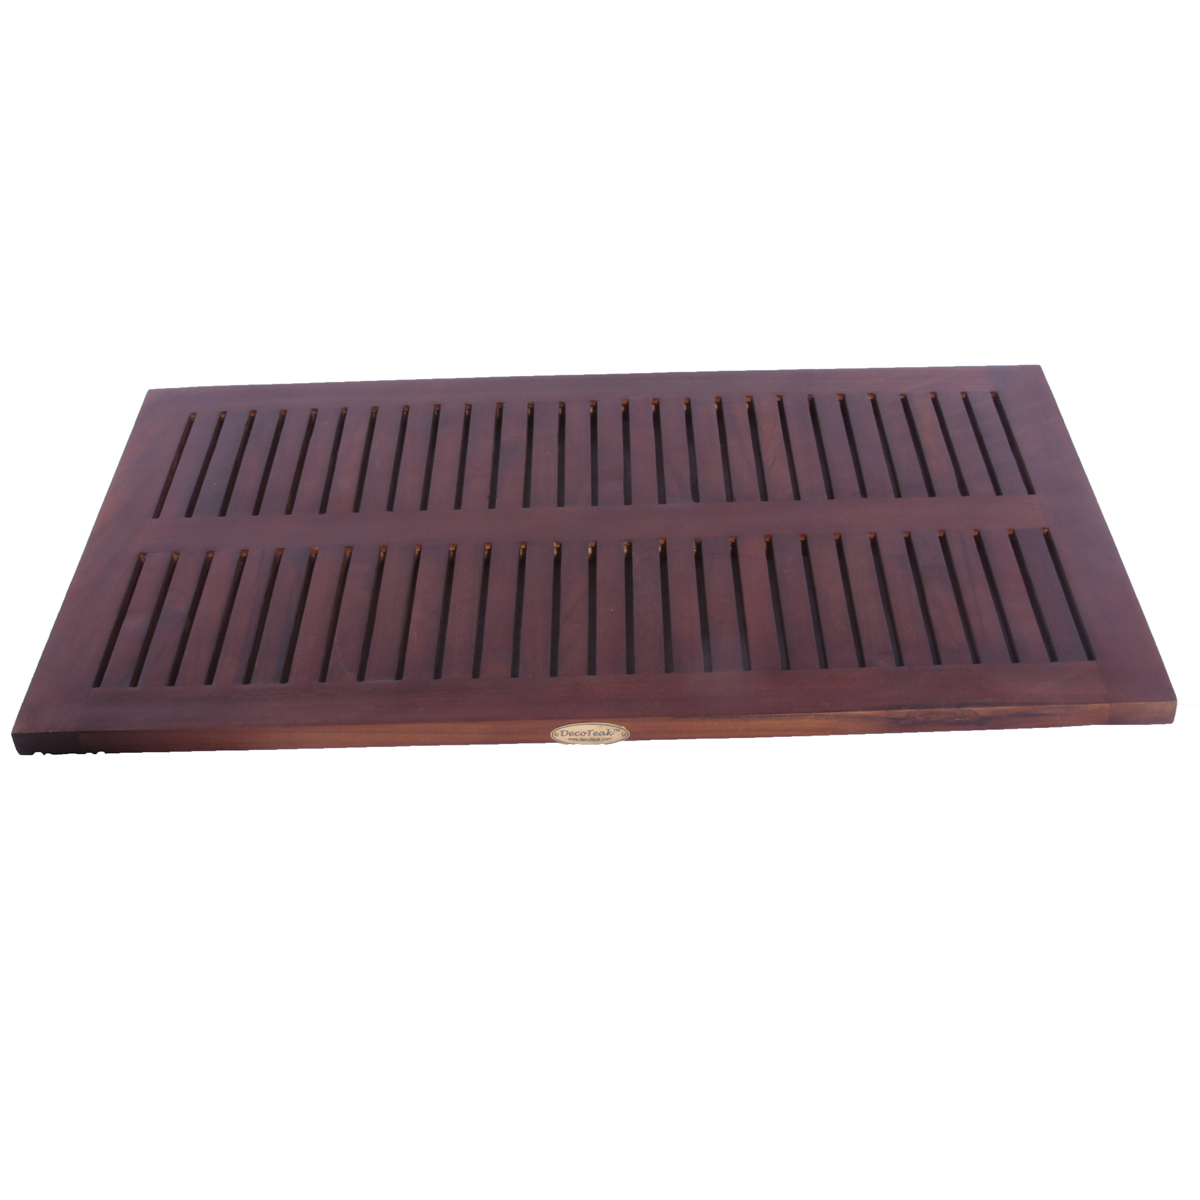 "DT134 31"" x 18"" Classic Teak Spa Shower and Floor Mat"